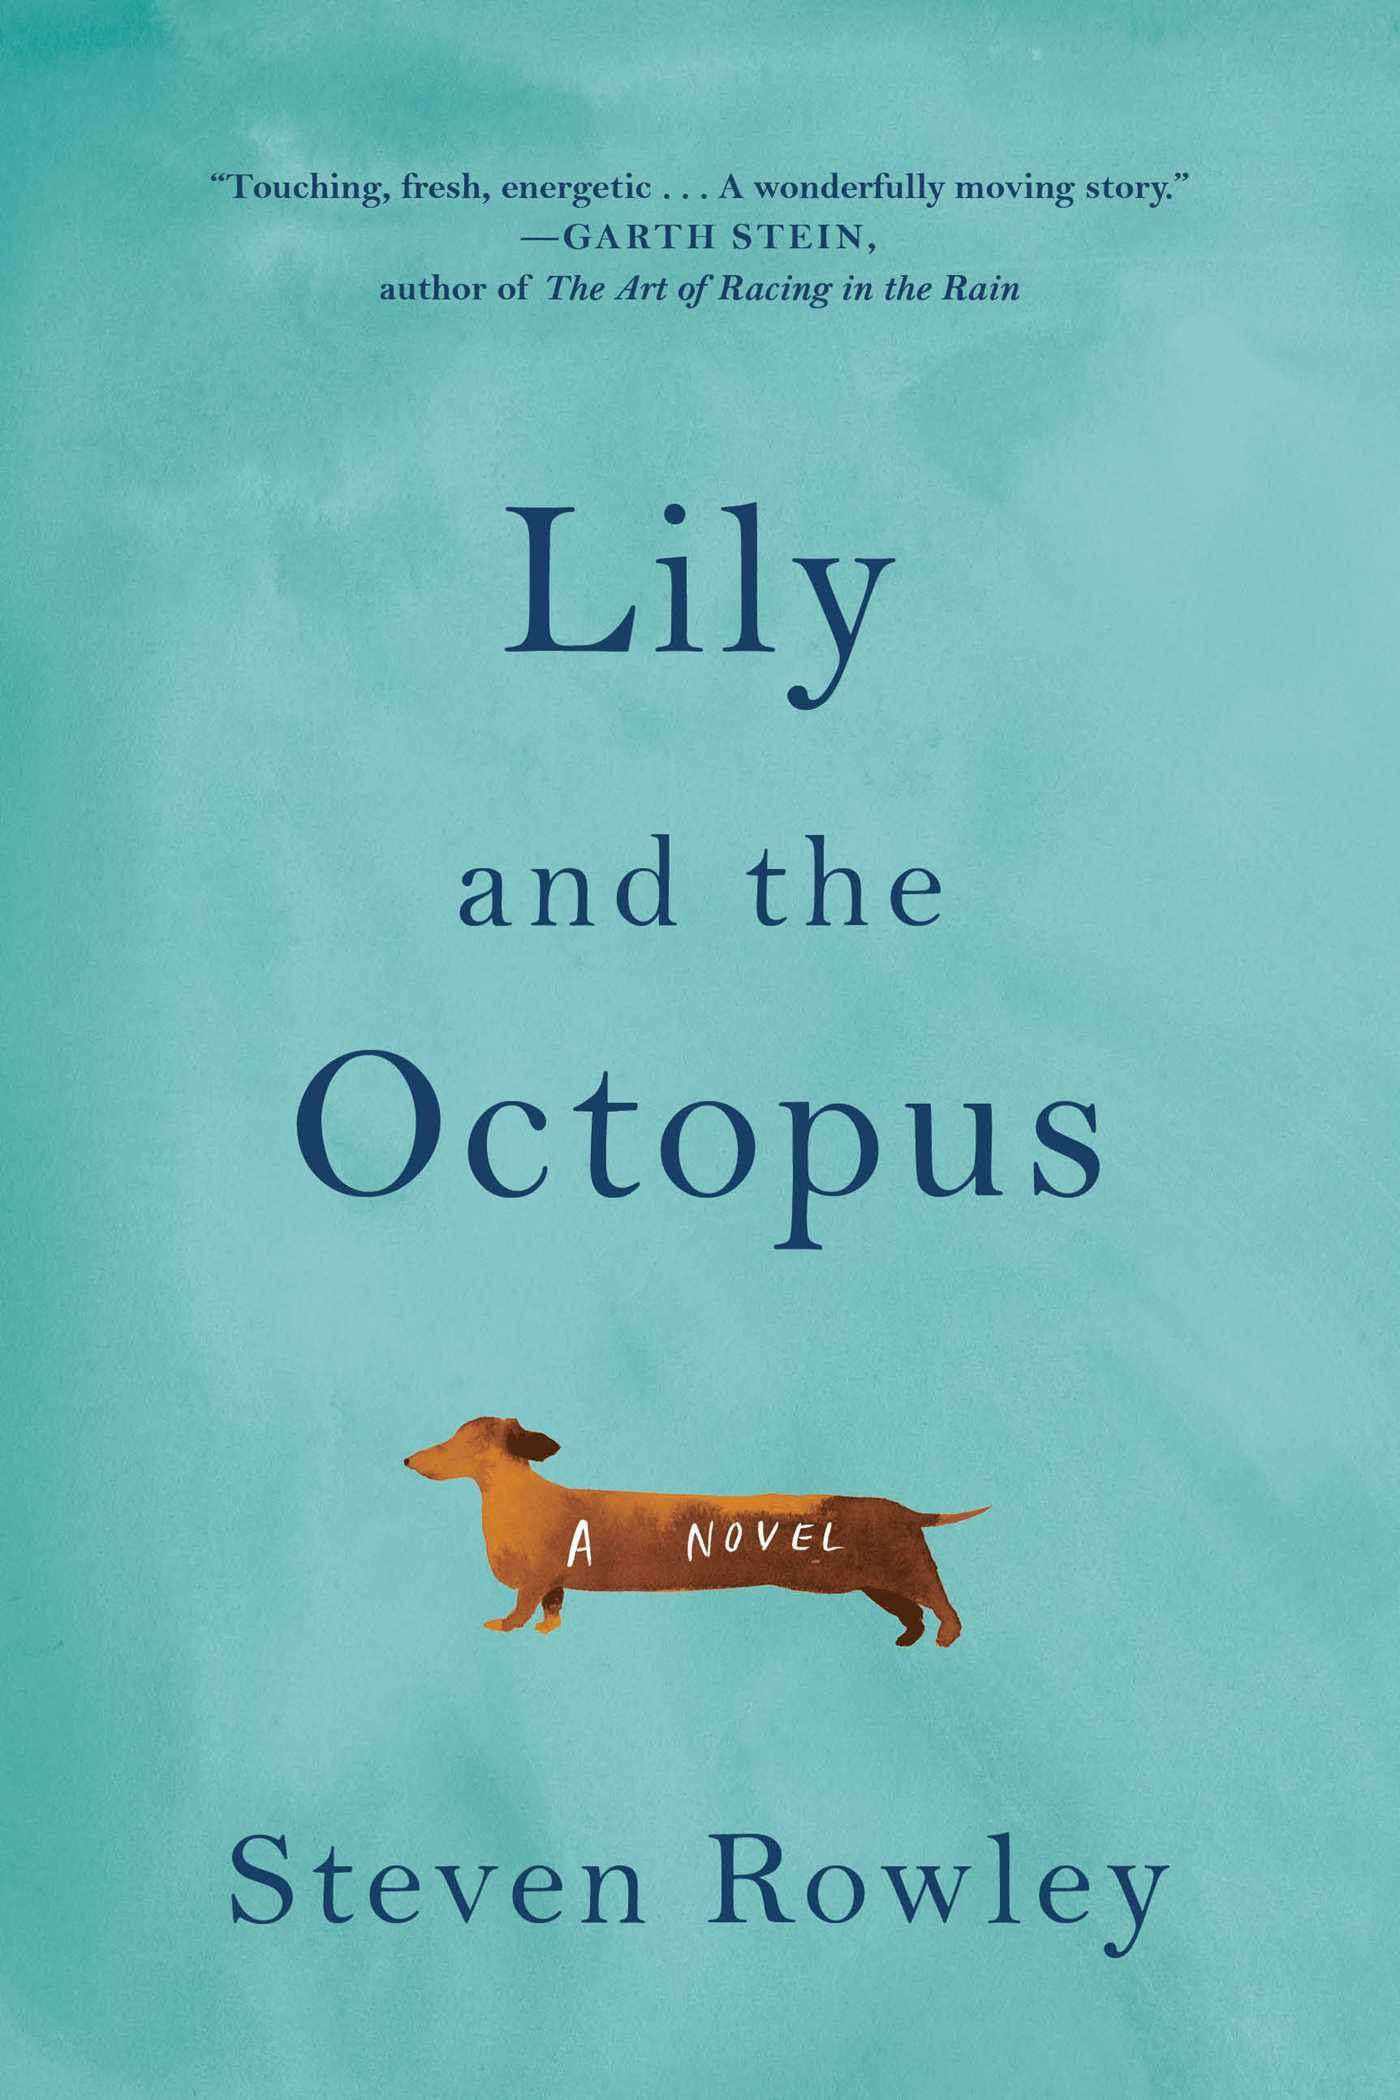 Lily and the Octopus, Steven Rowley, Tootsie, Dustin Hoffman